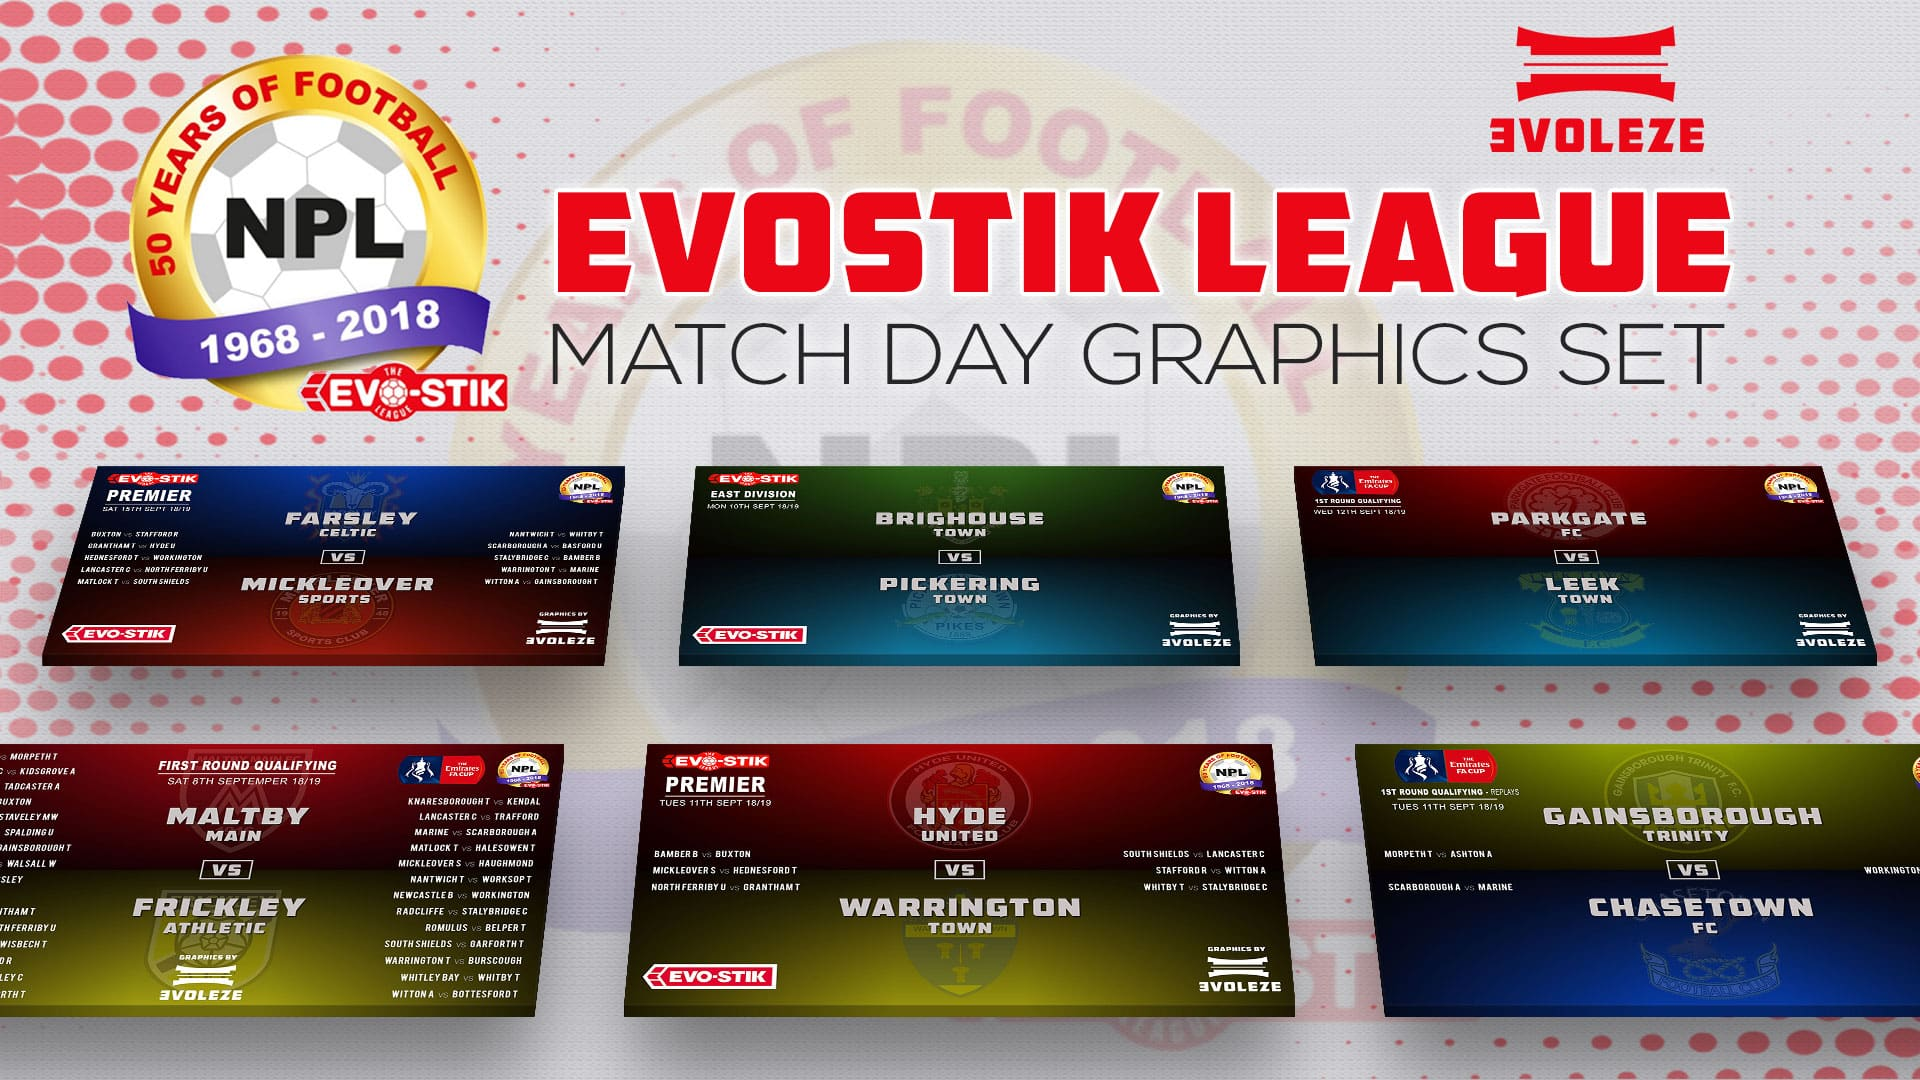 evostik league match day fixture graphics